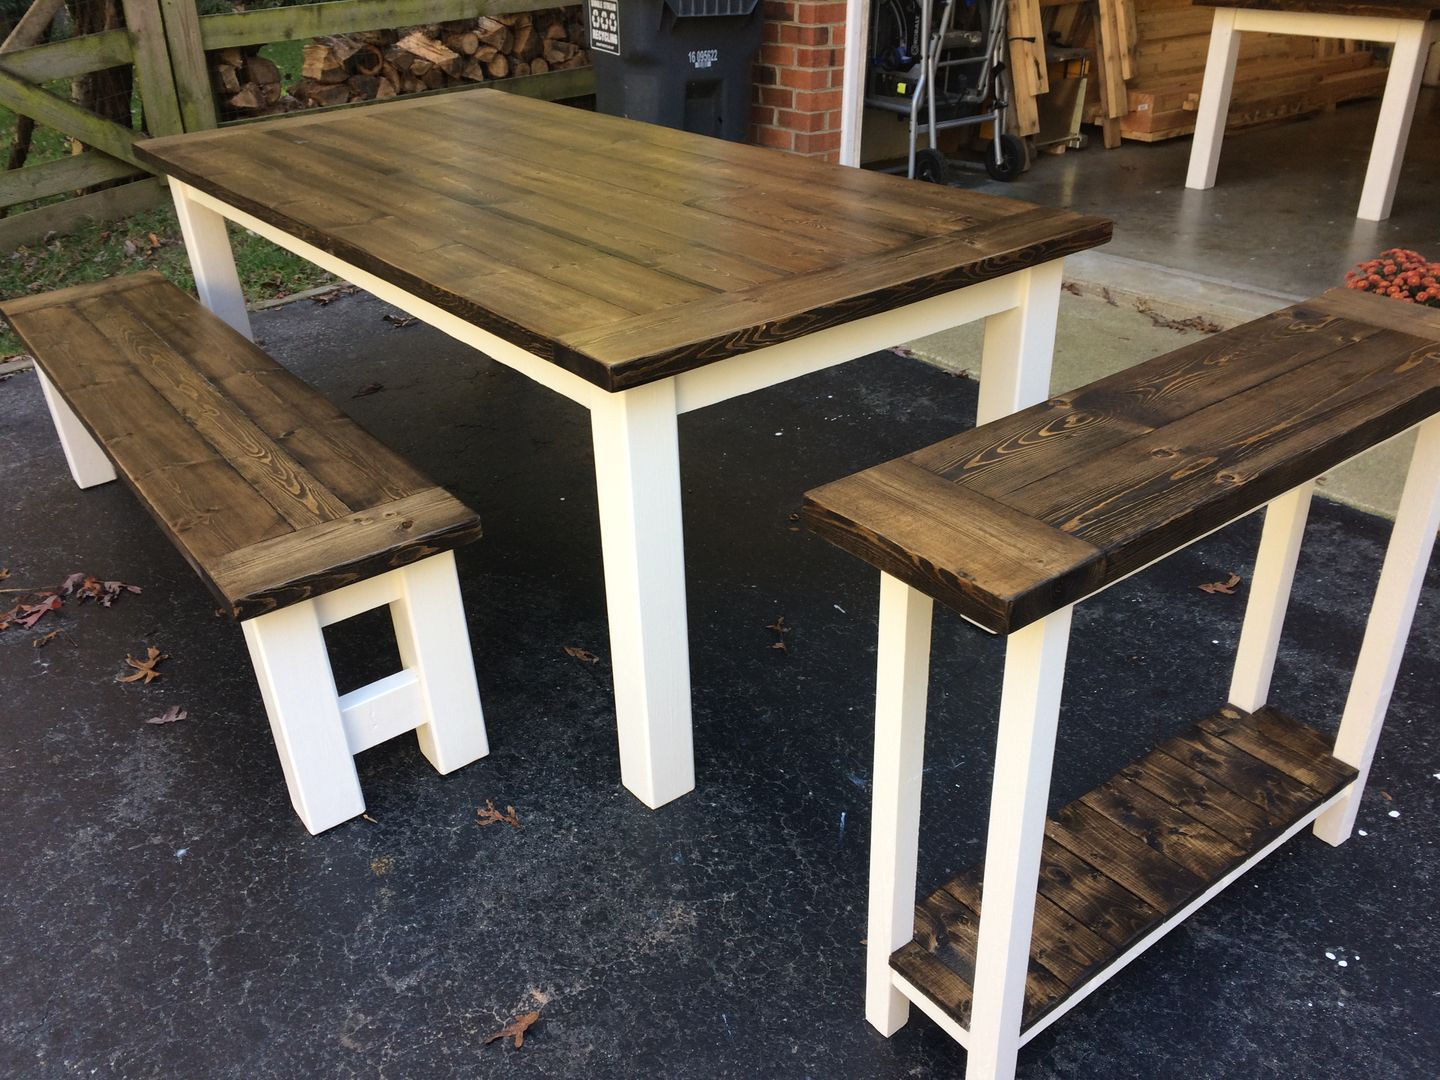 Wood Furniture, Farm House Tables Into The Woods